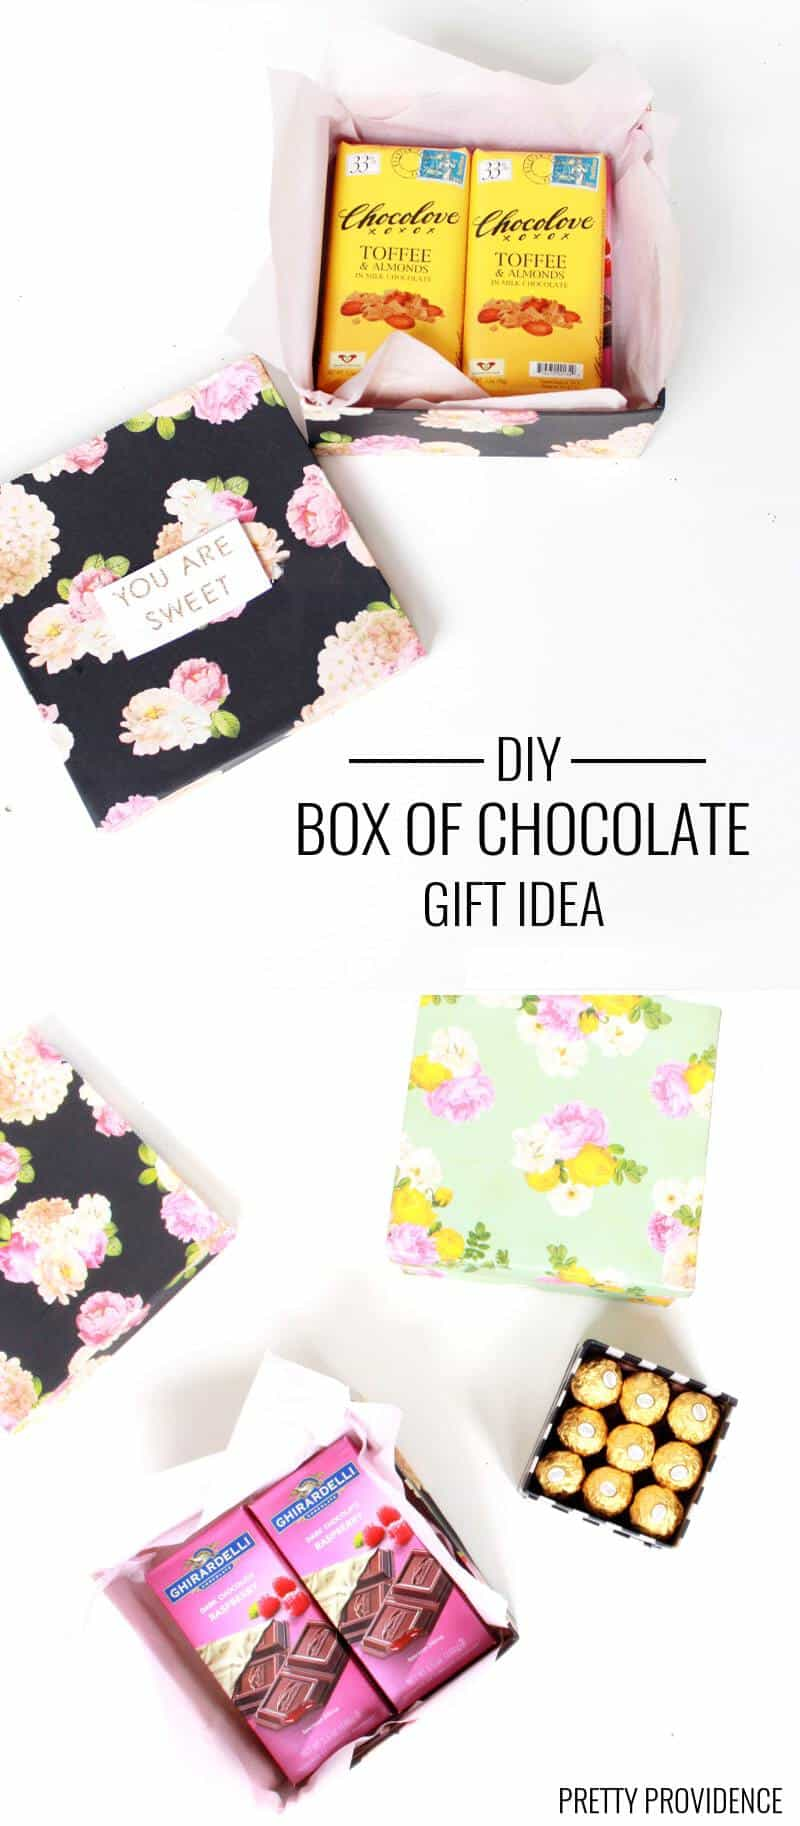 Fill a box with your favorite fancy chocolate for Mother's Day!! No more assortments!